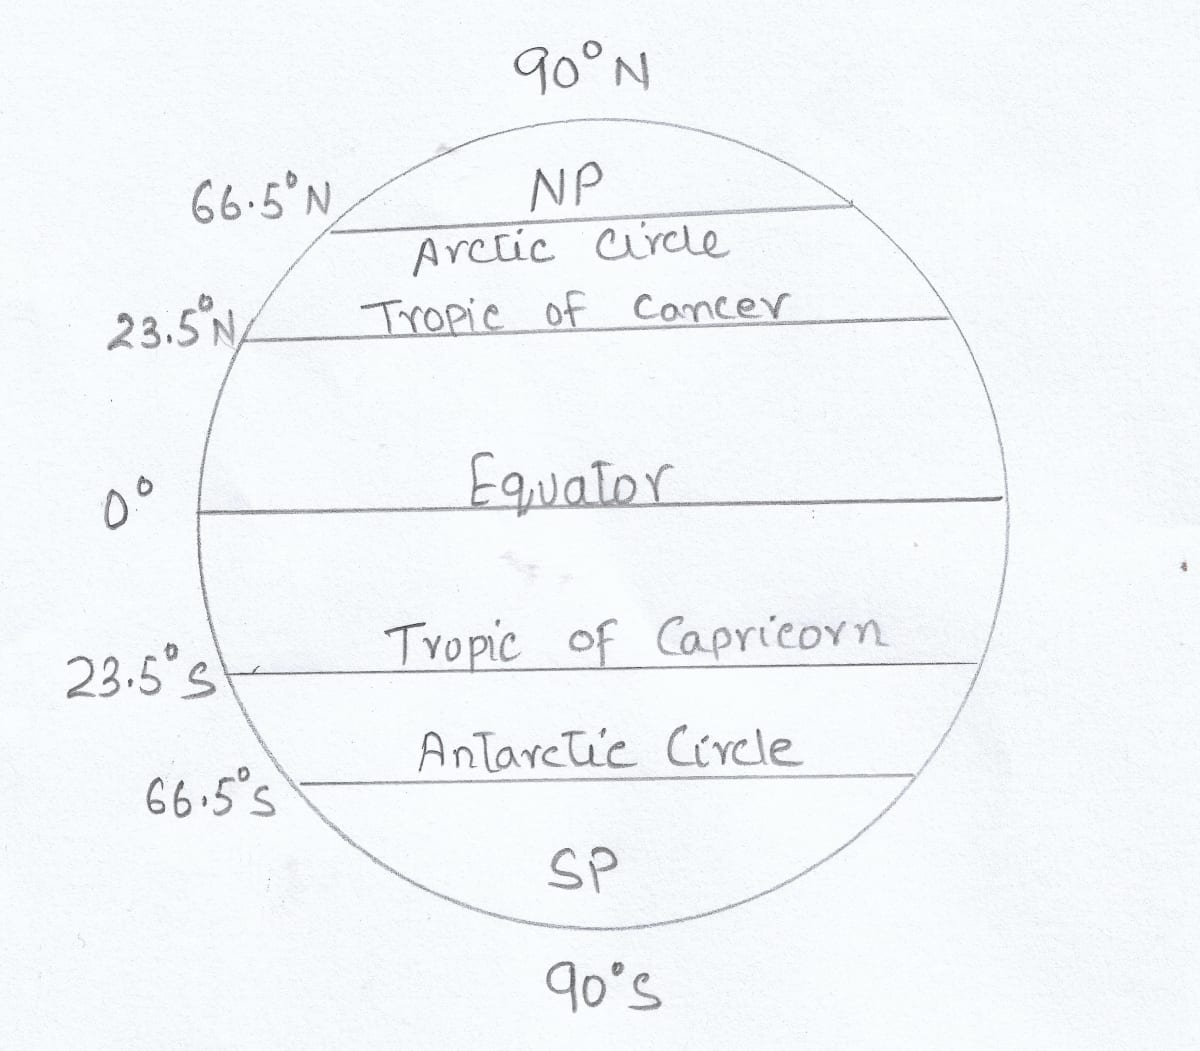 With the help of a diagram show the important lines of latitude. Total Geography ICSE Class 9